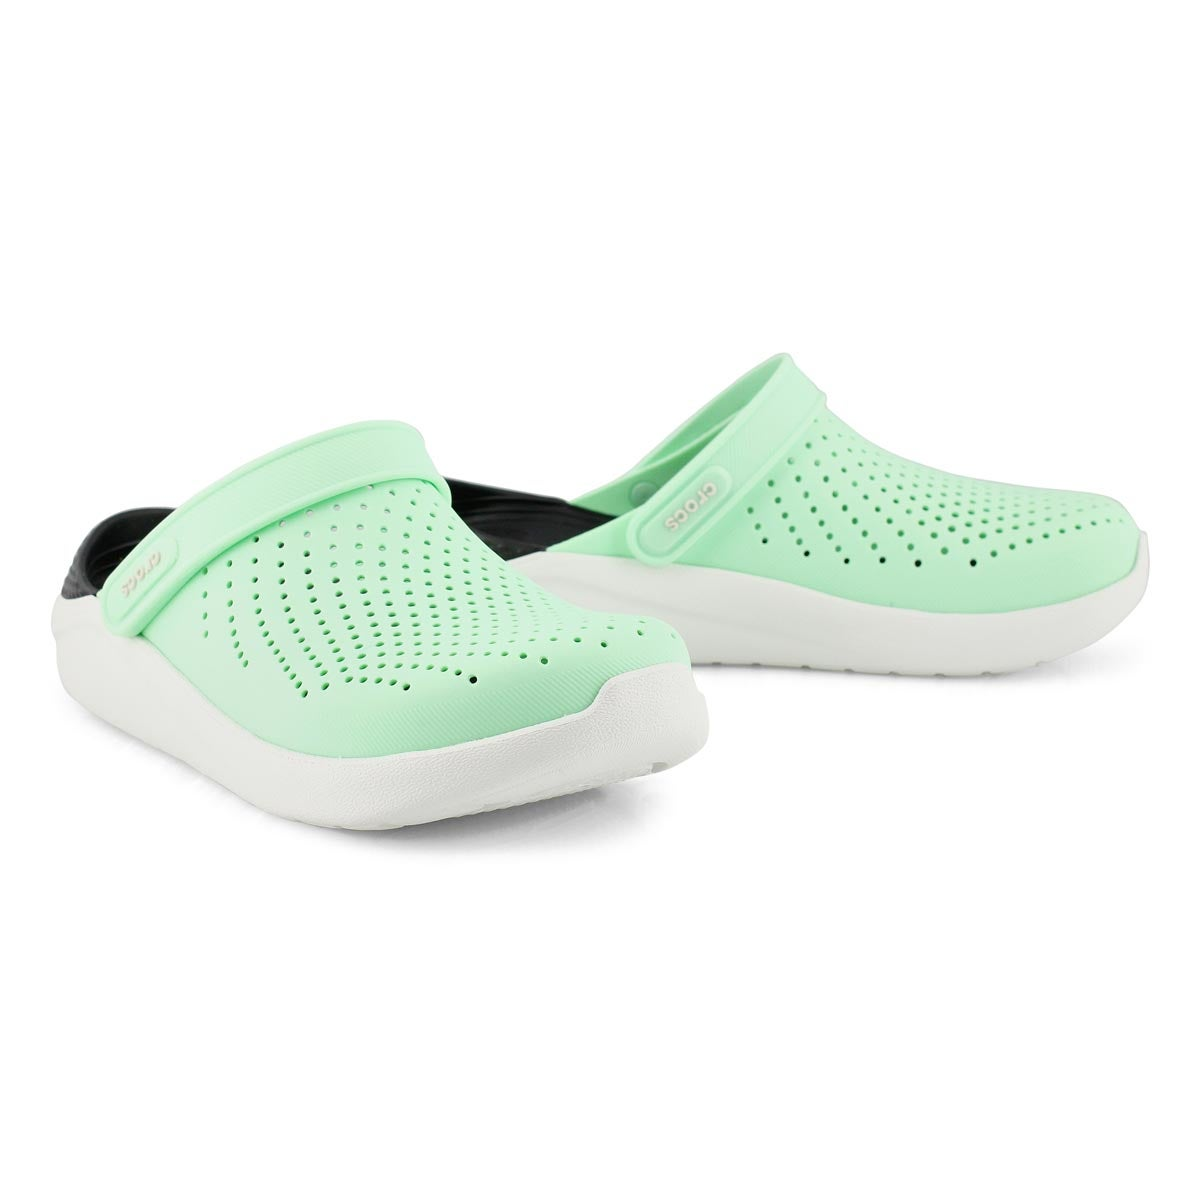 Lds LiteRide neo mint/almost wt clog